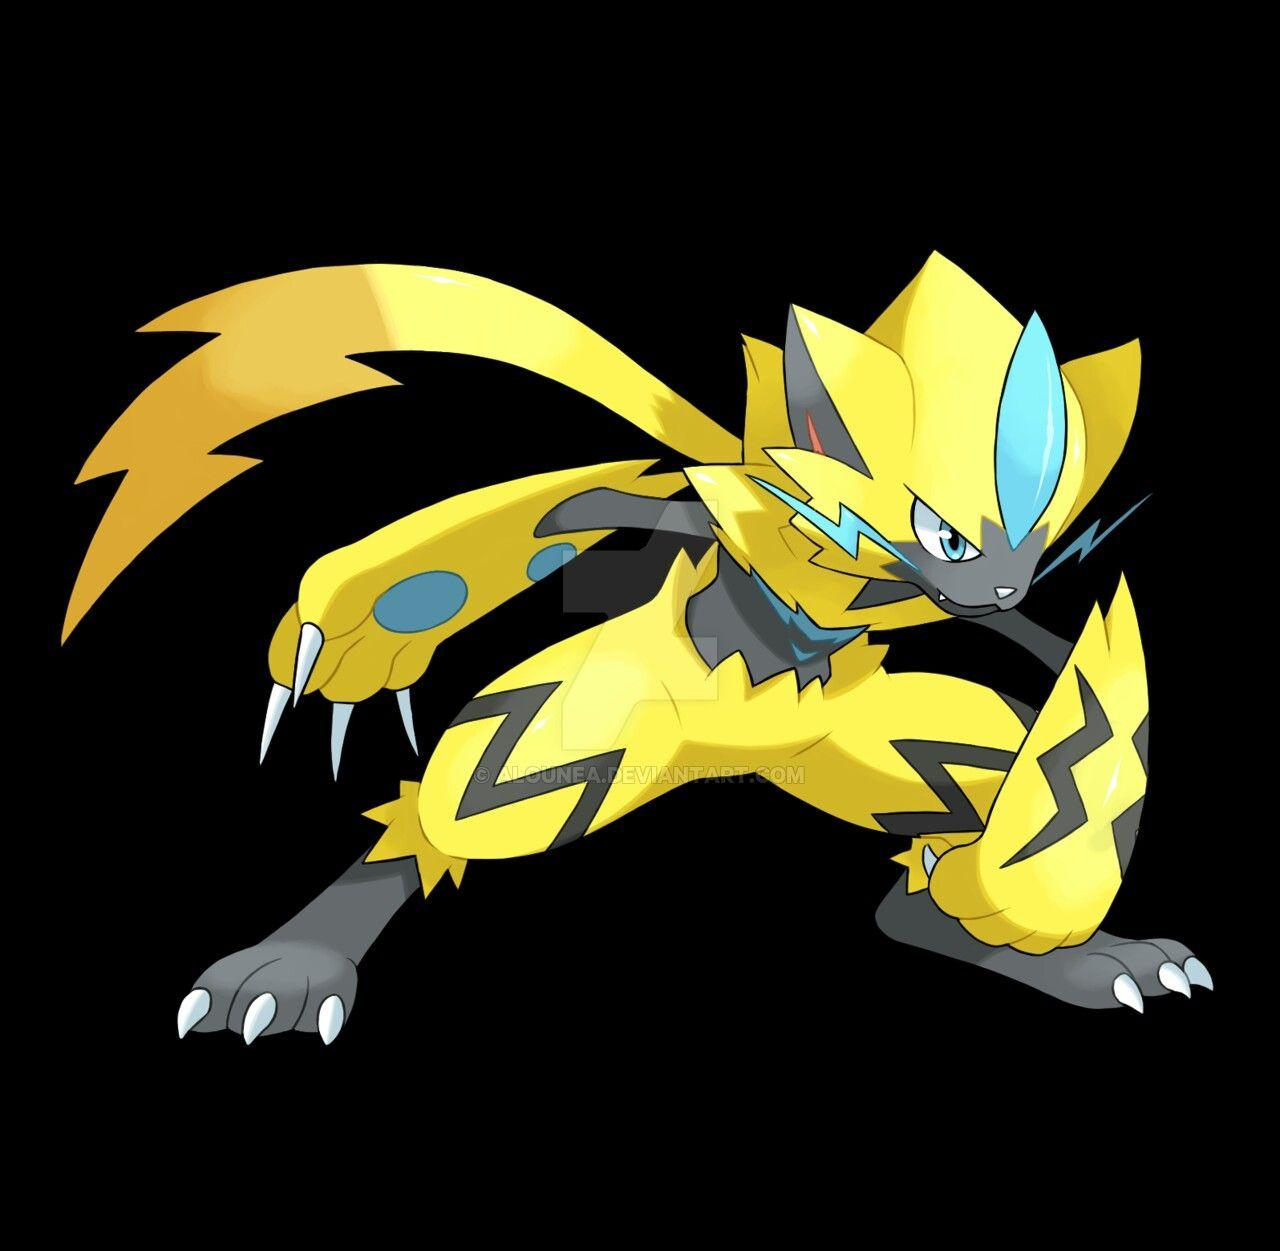 Zeraora | Pokemon | Pinterest | Pokémon, Pokemon alola and Digimon